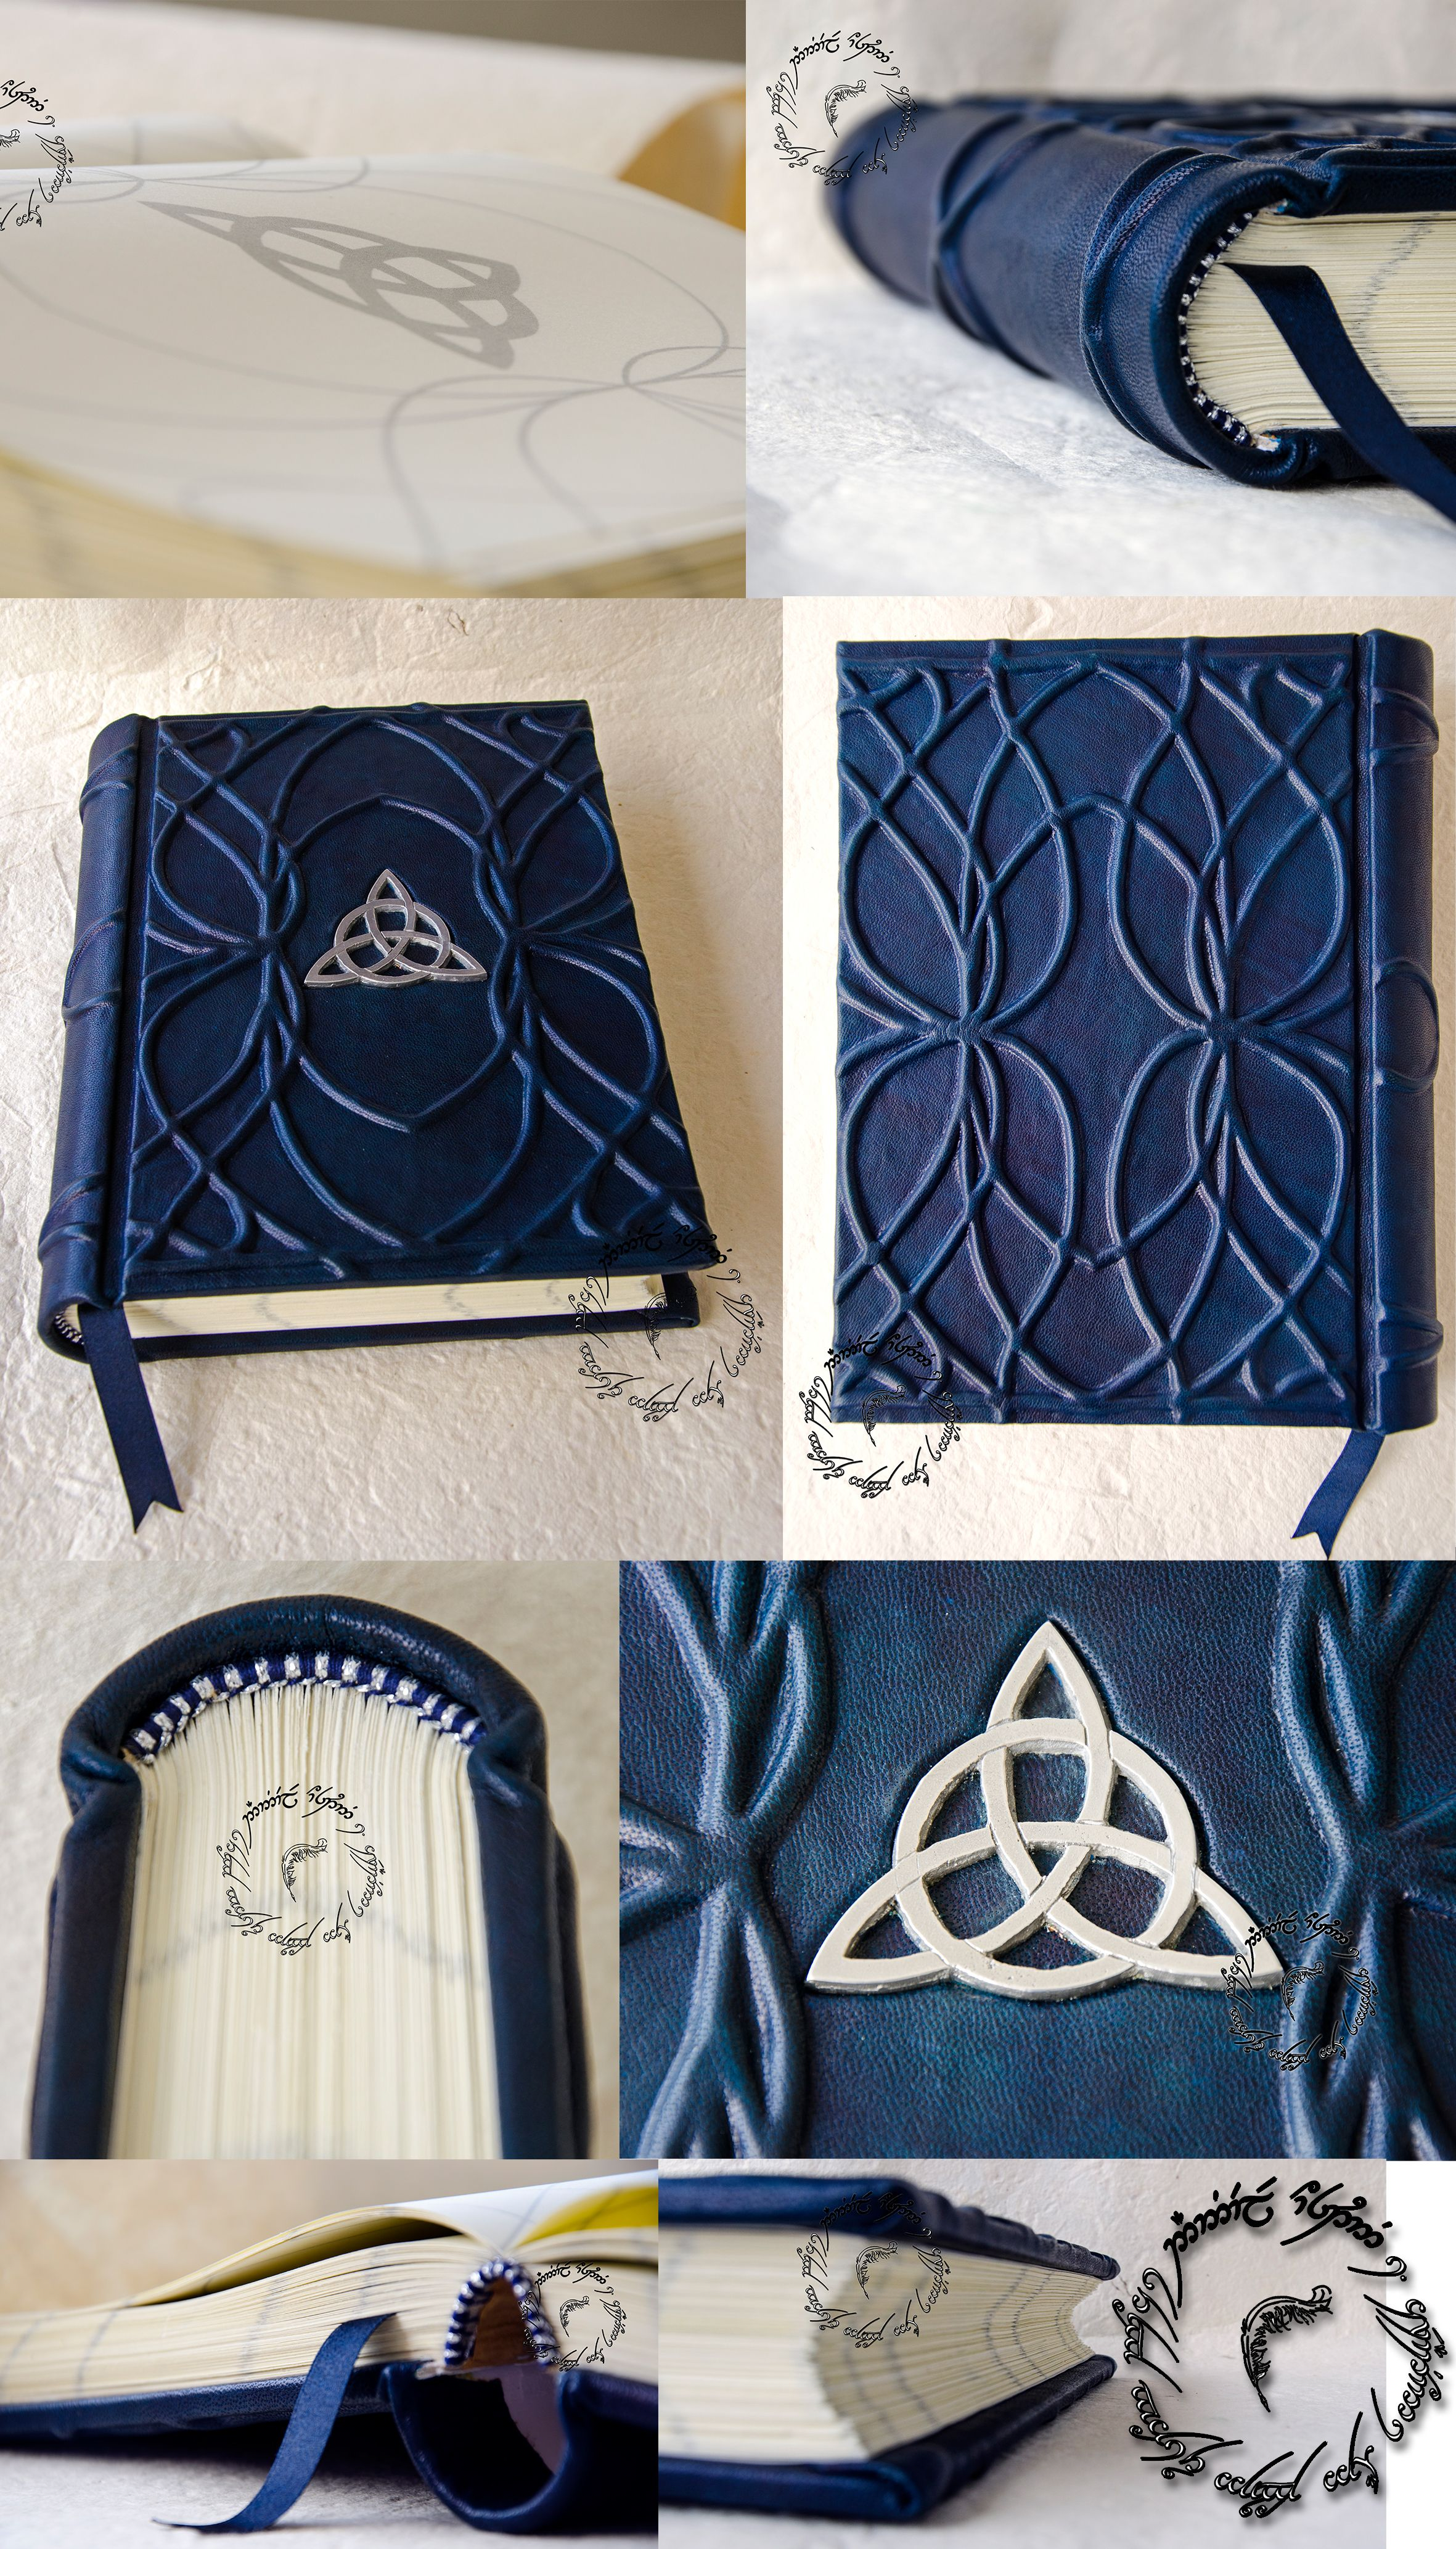 How To Make A Book Cover Out Of A Victoria S Secret Bag ~ A beautifully made elven inspired book could do this with